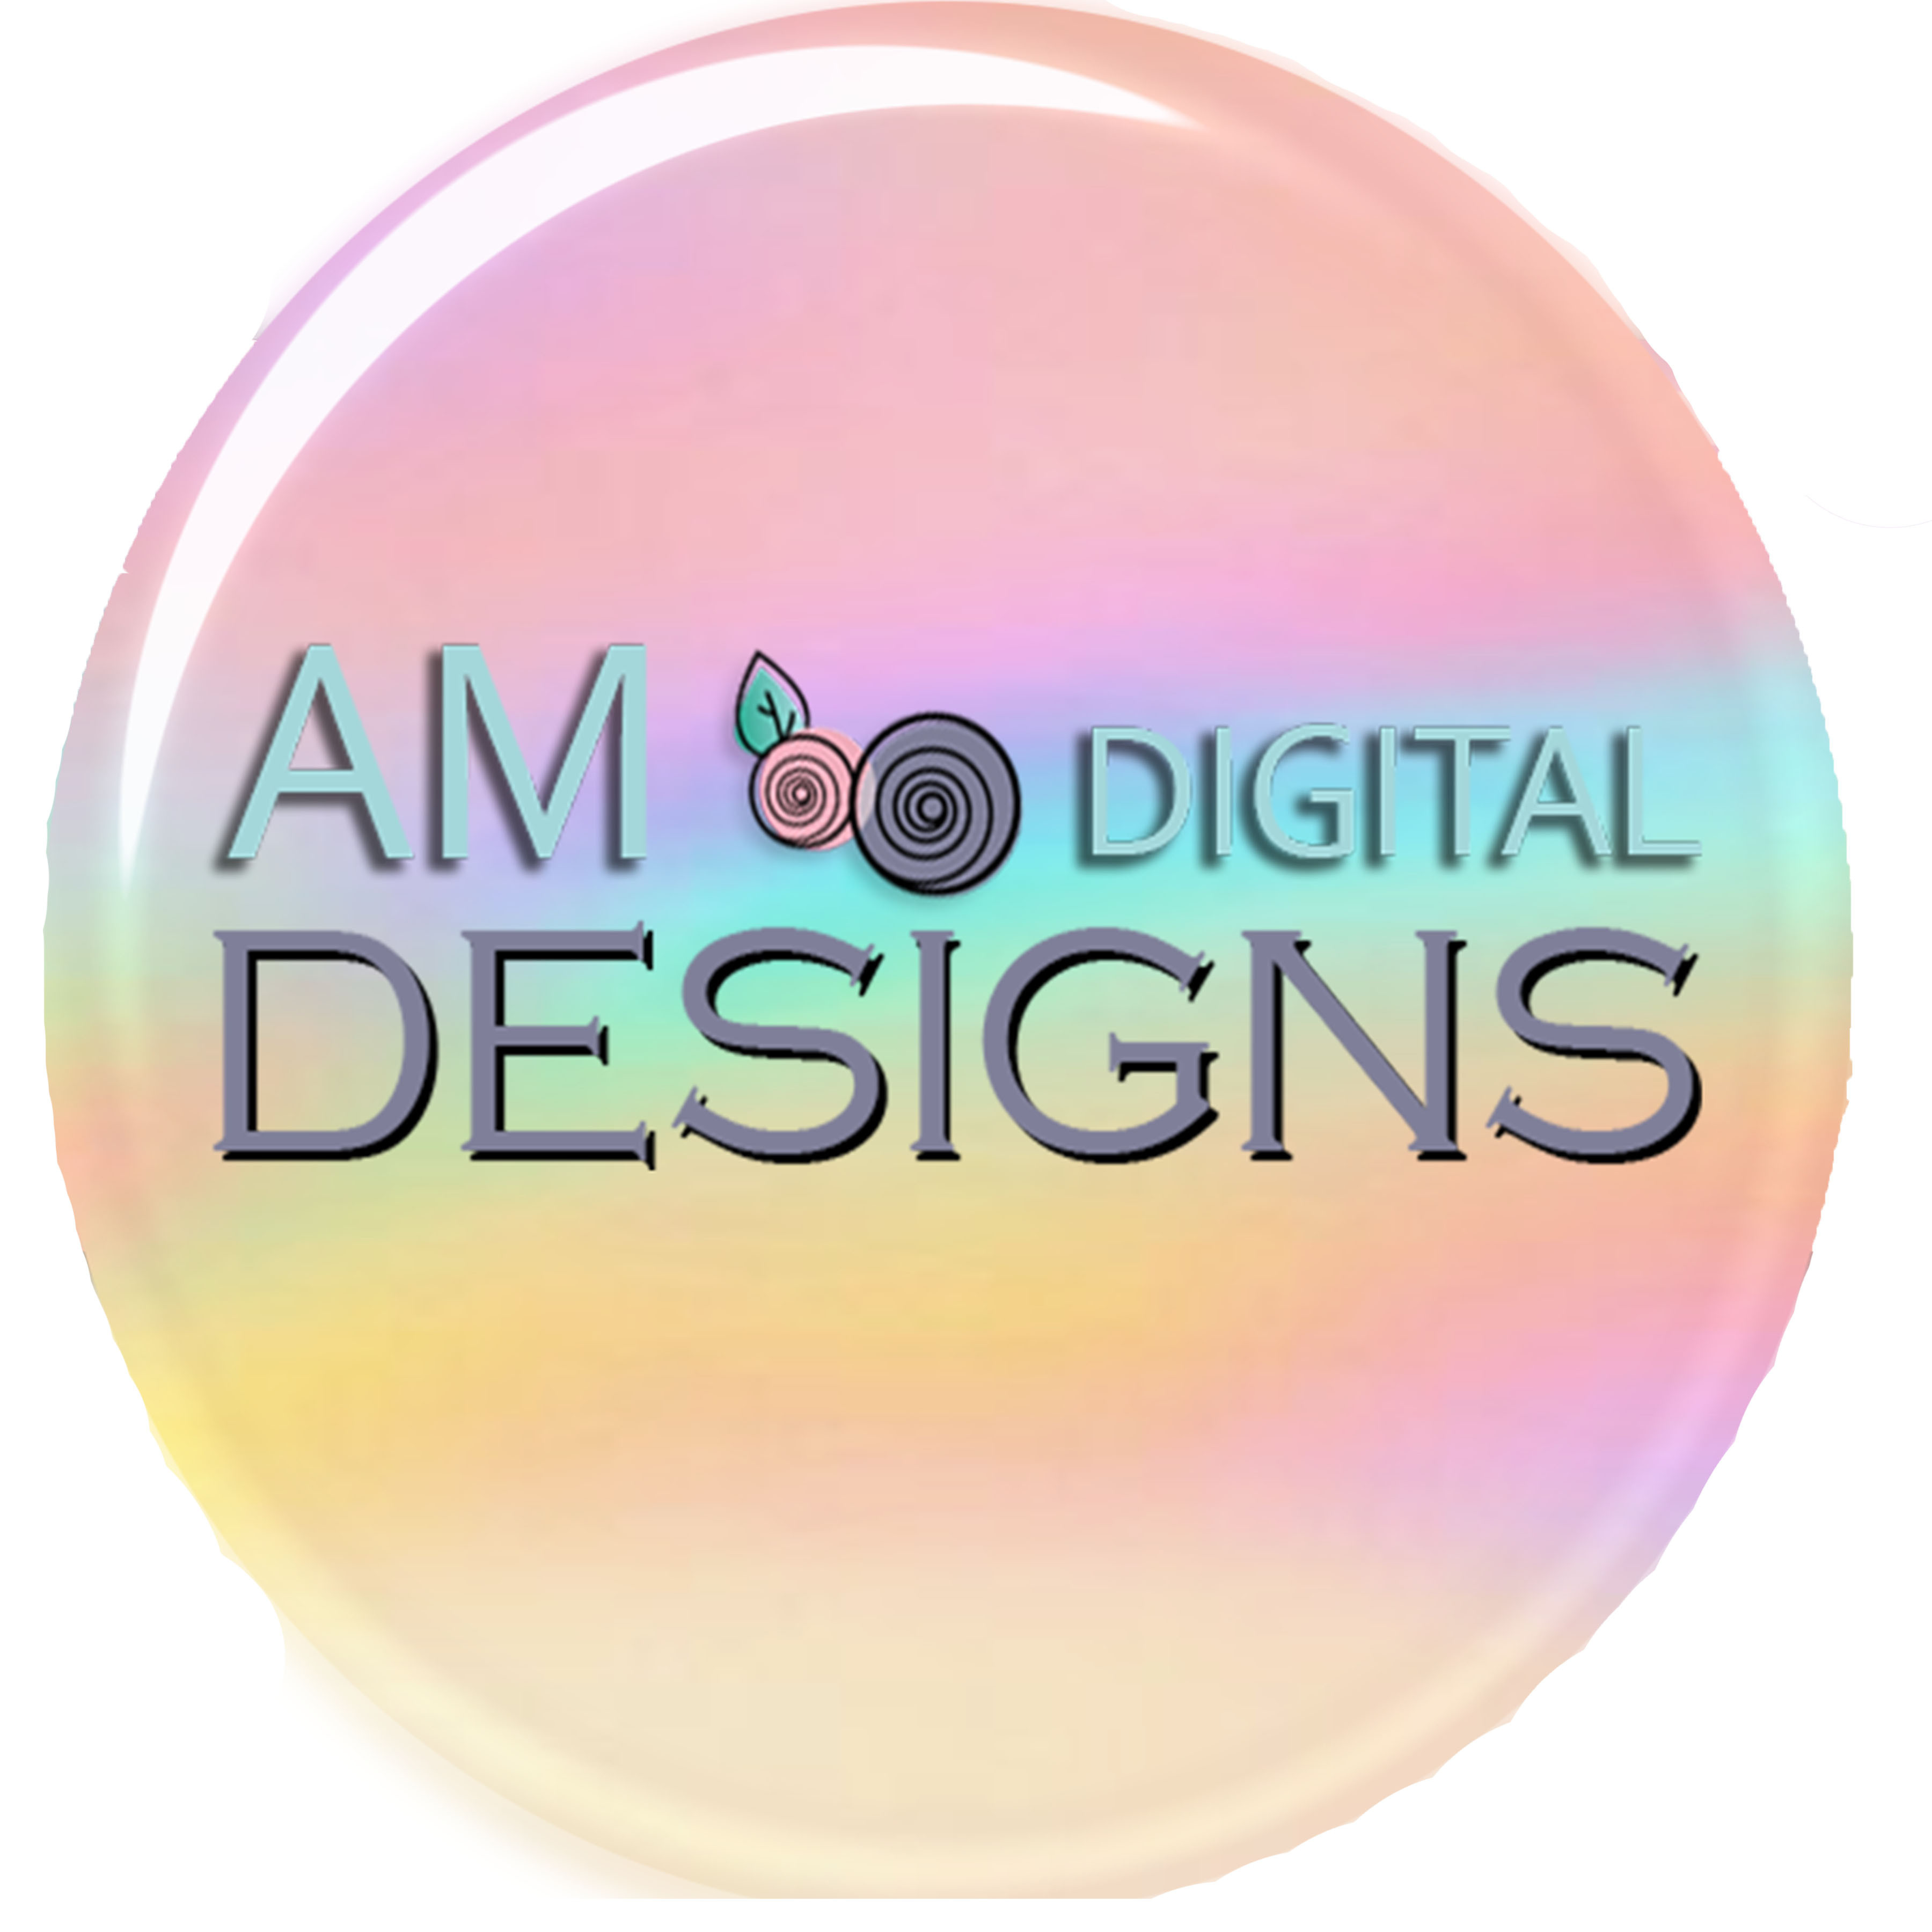 AM Digital Designs